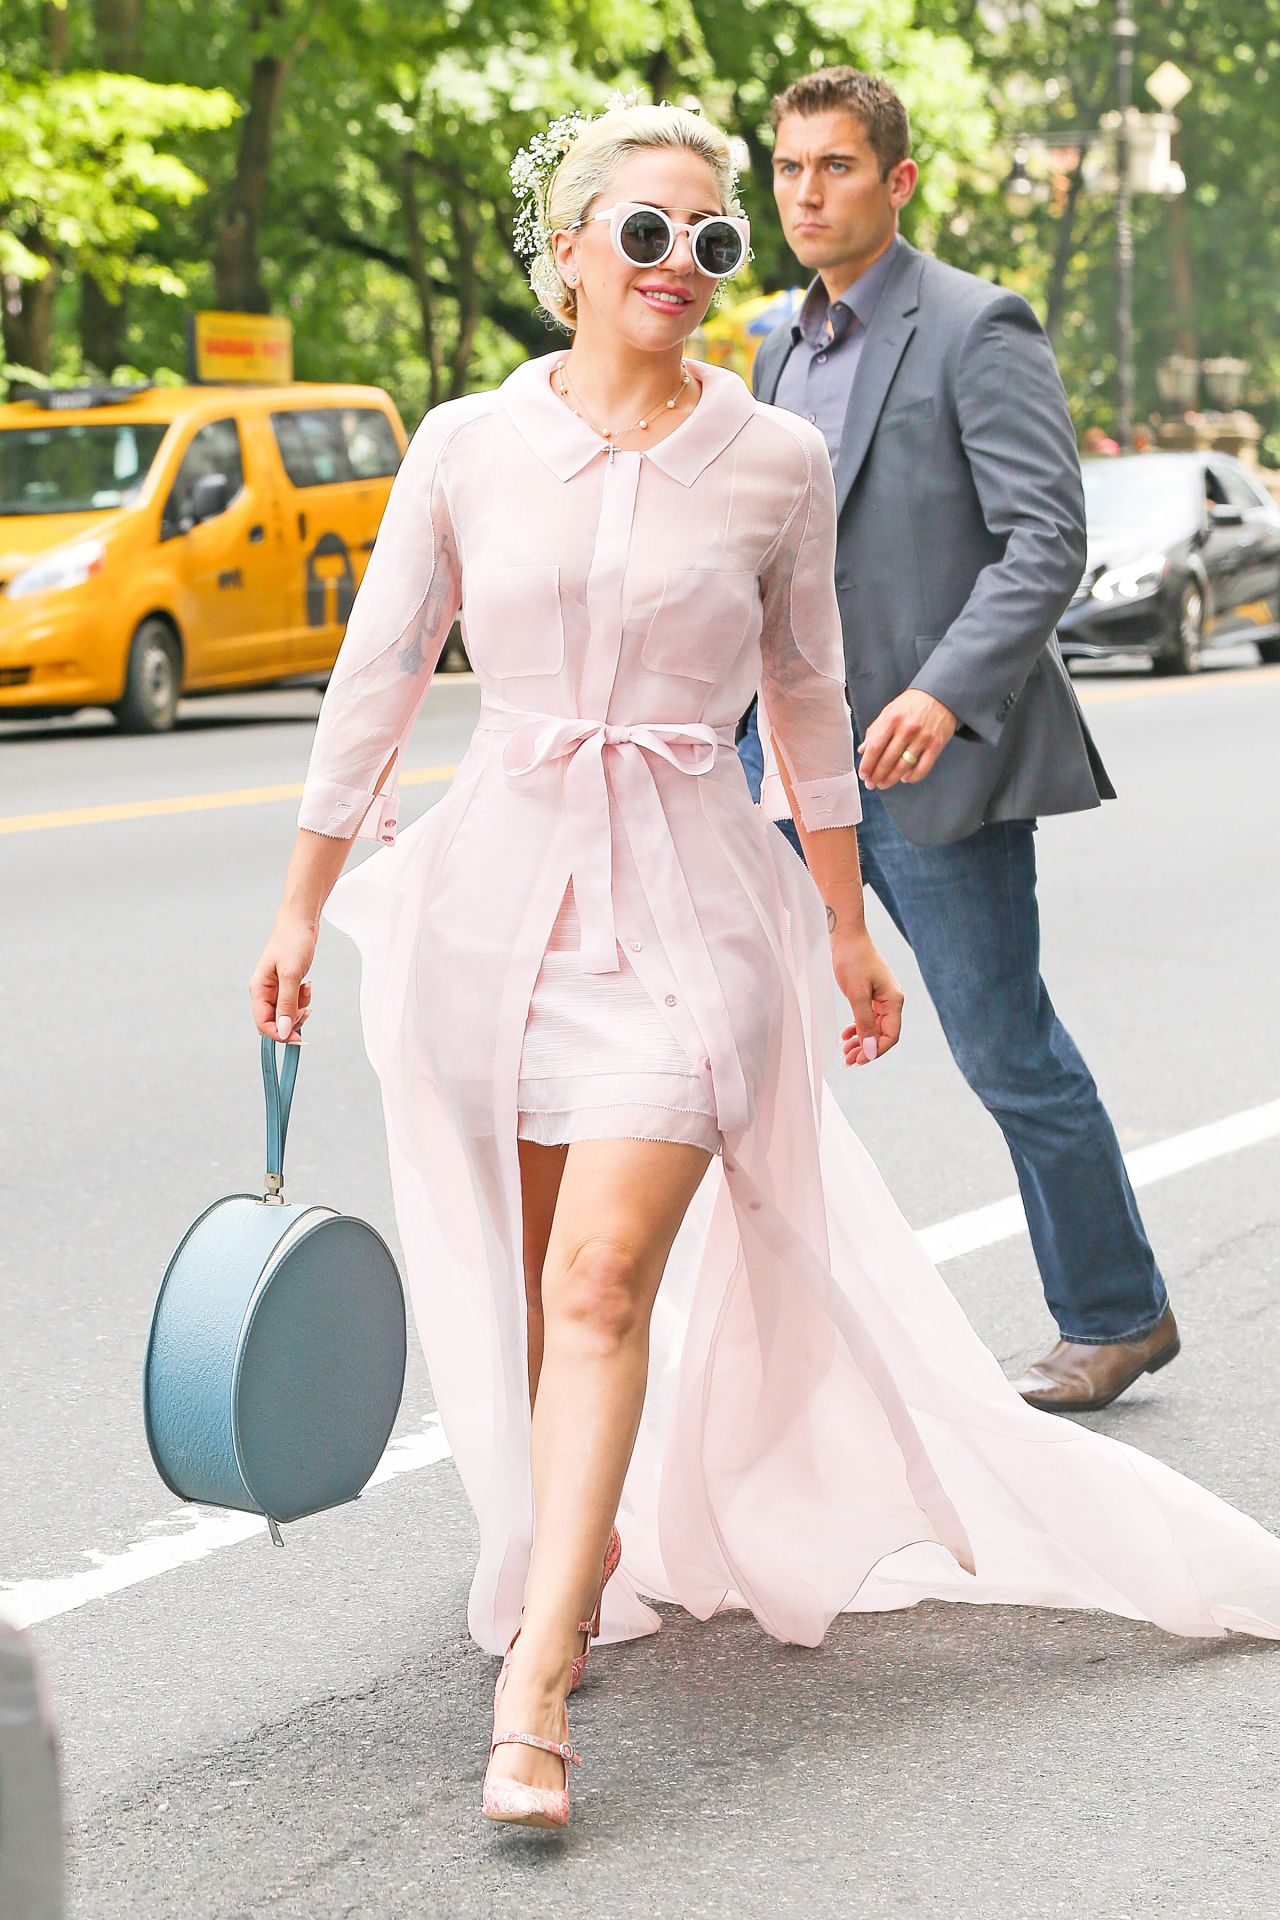 lady-gaga-style-heading-out-in-new-york-city-07-24-2016-3